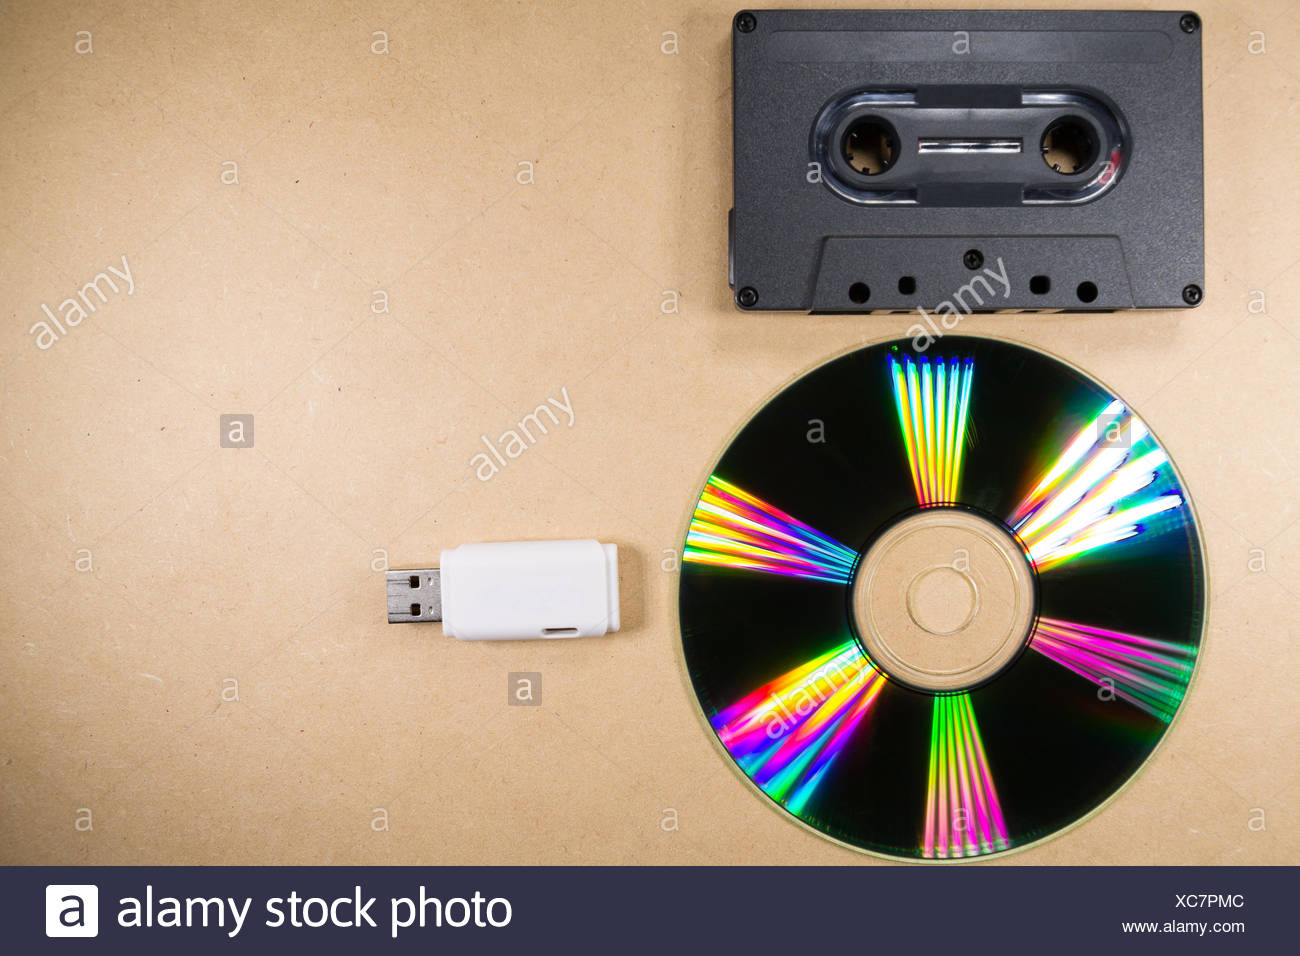 Concept of music evolution - Stock Image